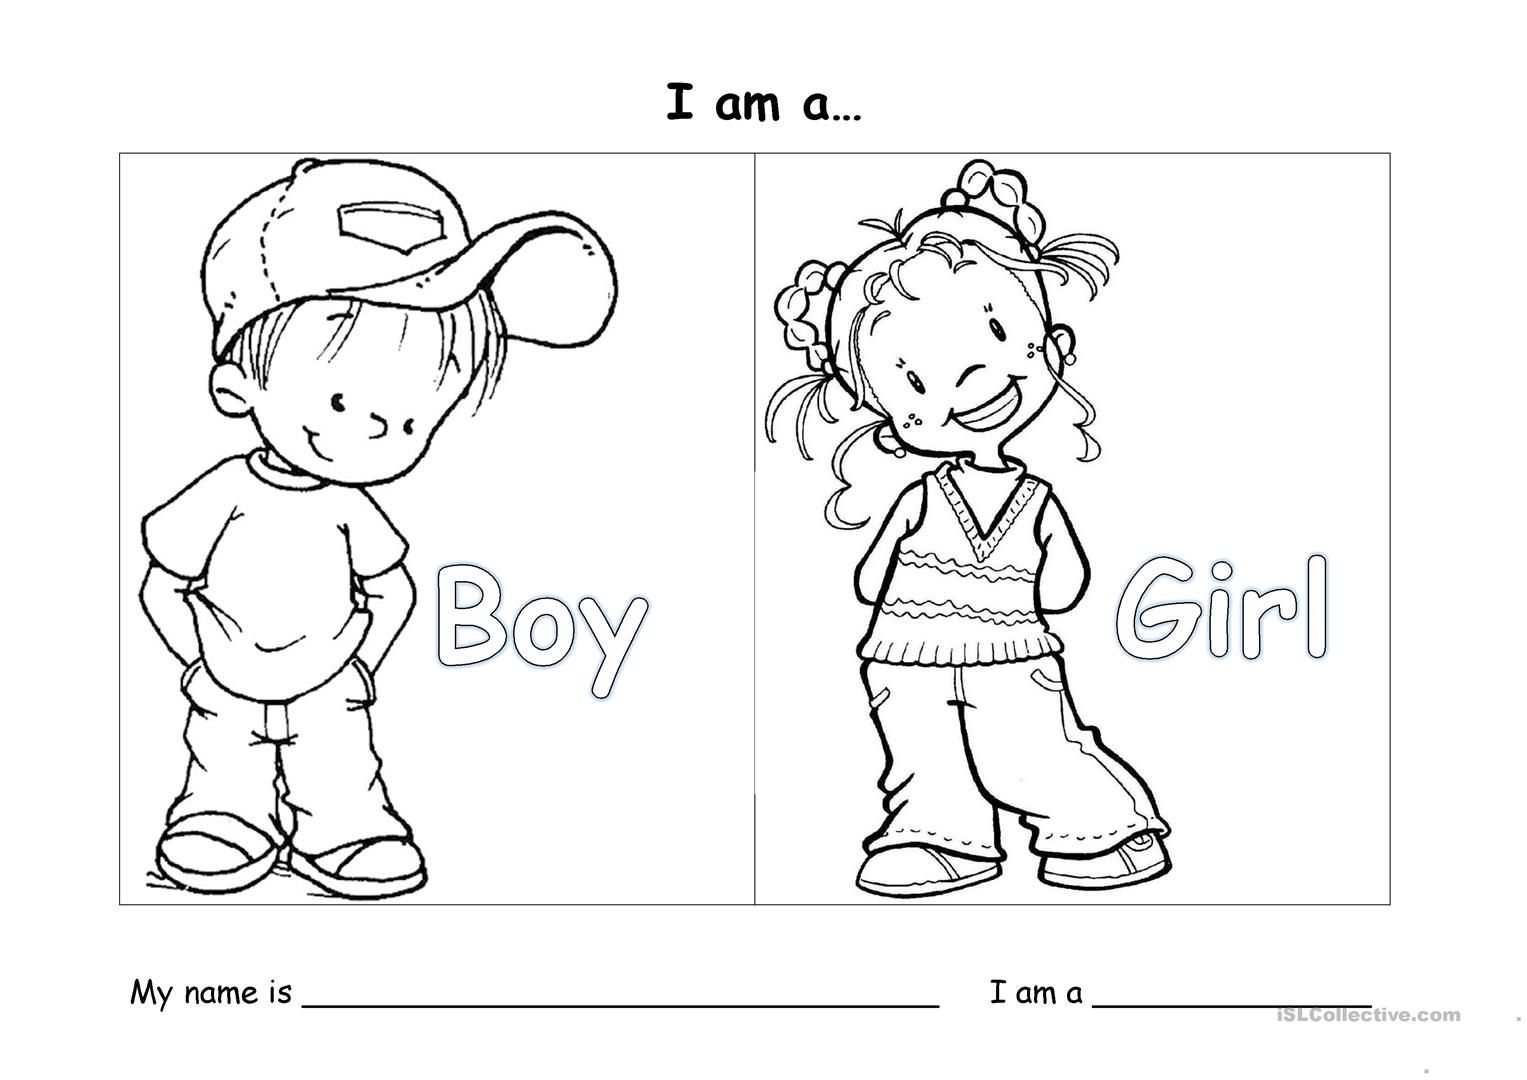 I Am A Boy Gir Worksheet